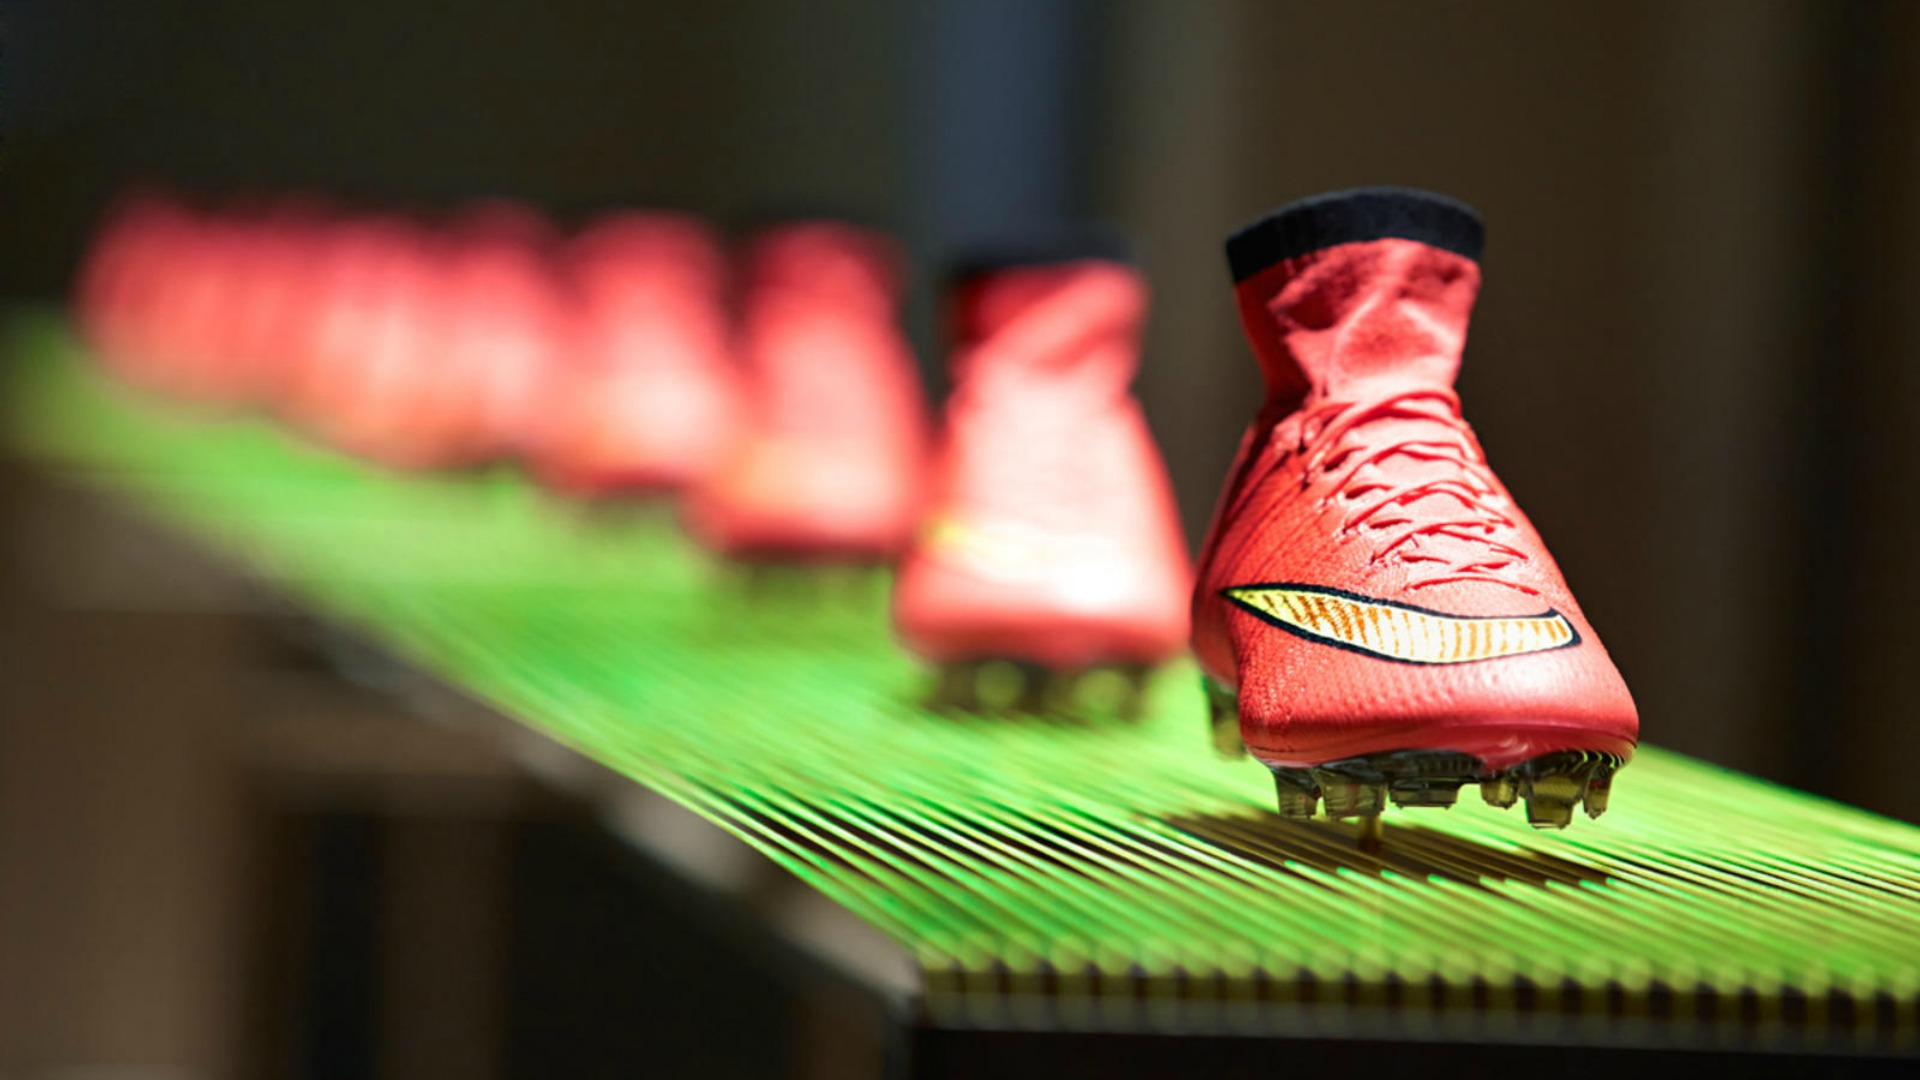 reputable site fc6fc cac1d The Coolest Advancements in Football Boot Technology - Urban Pitch